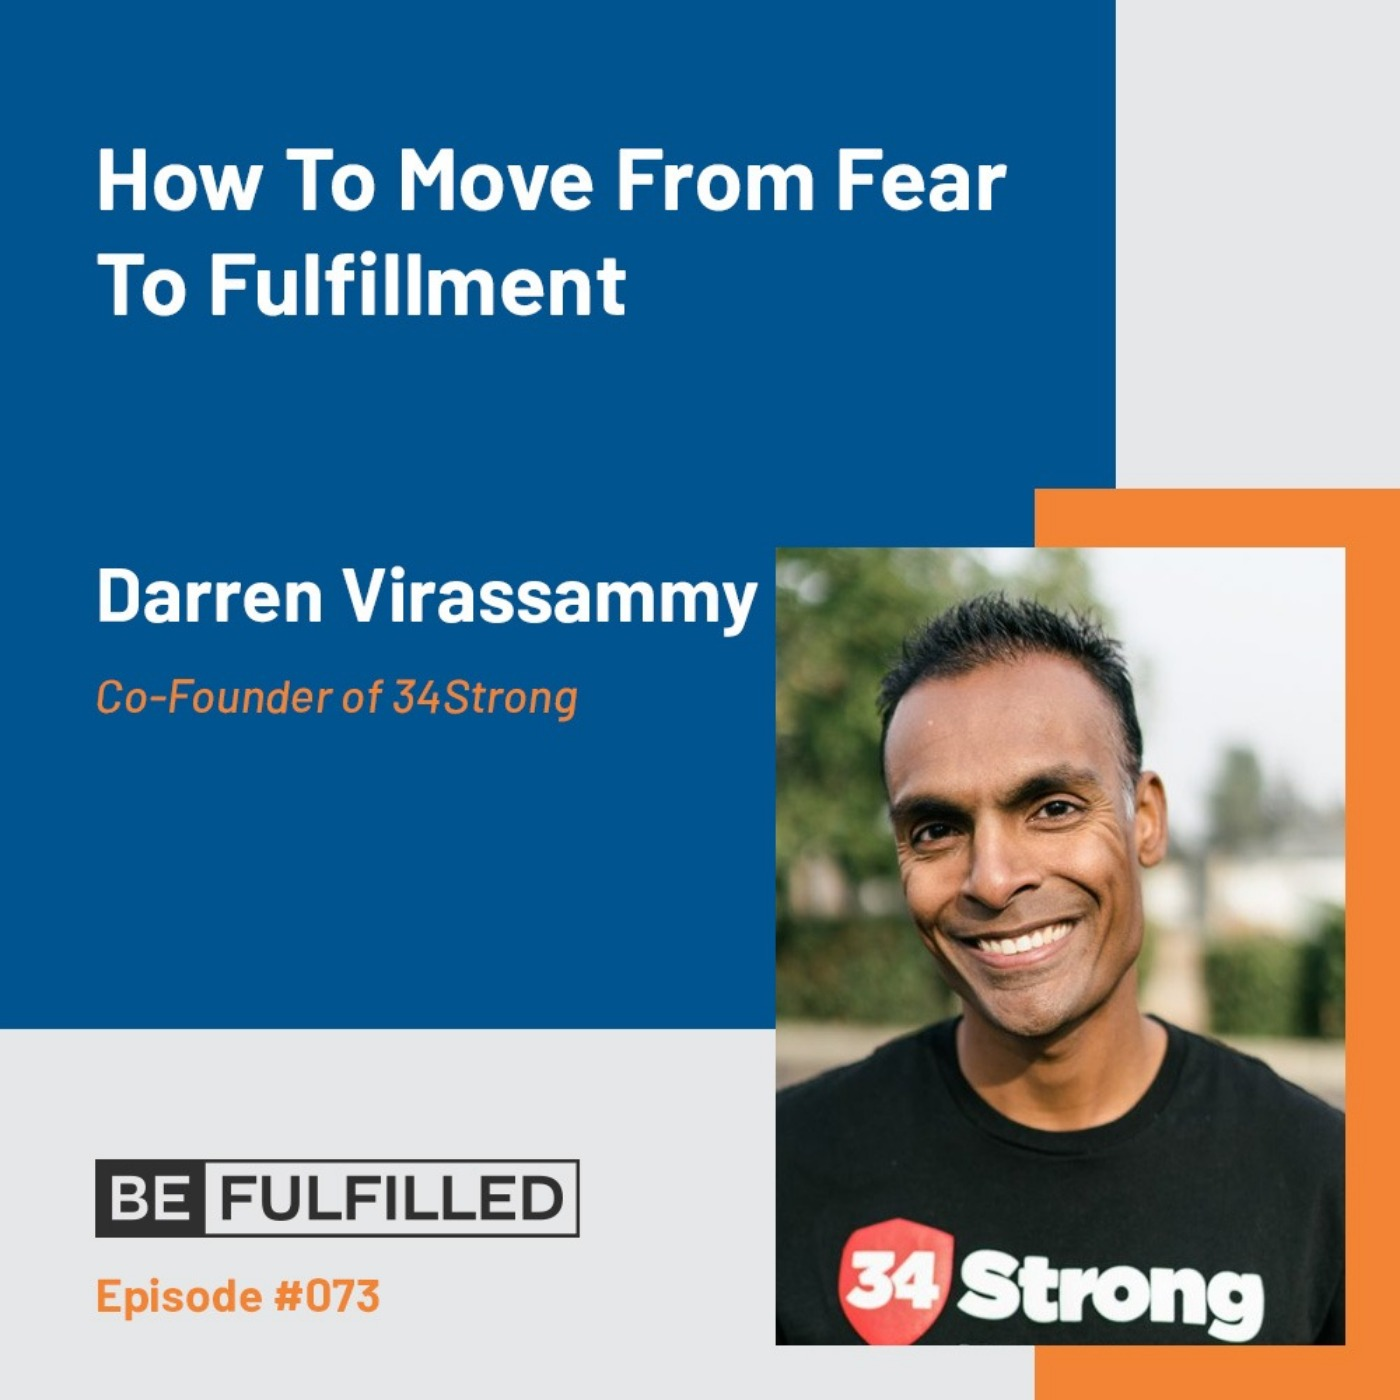 How To Move From Fear To Fulfillment - Darren Virassammy